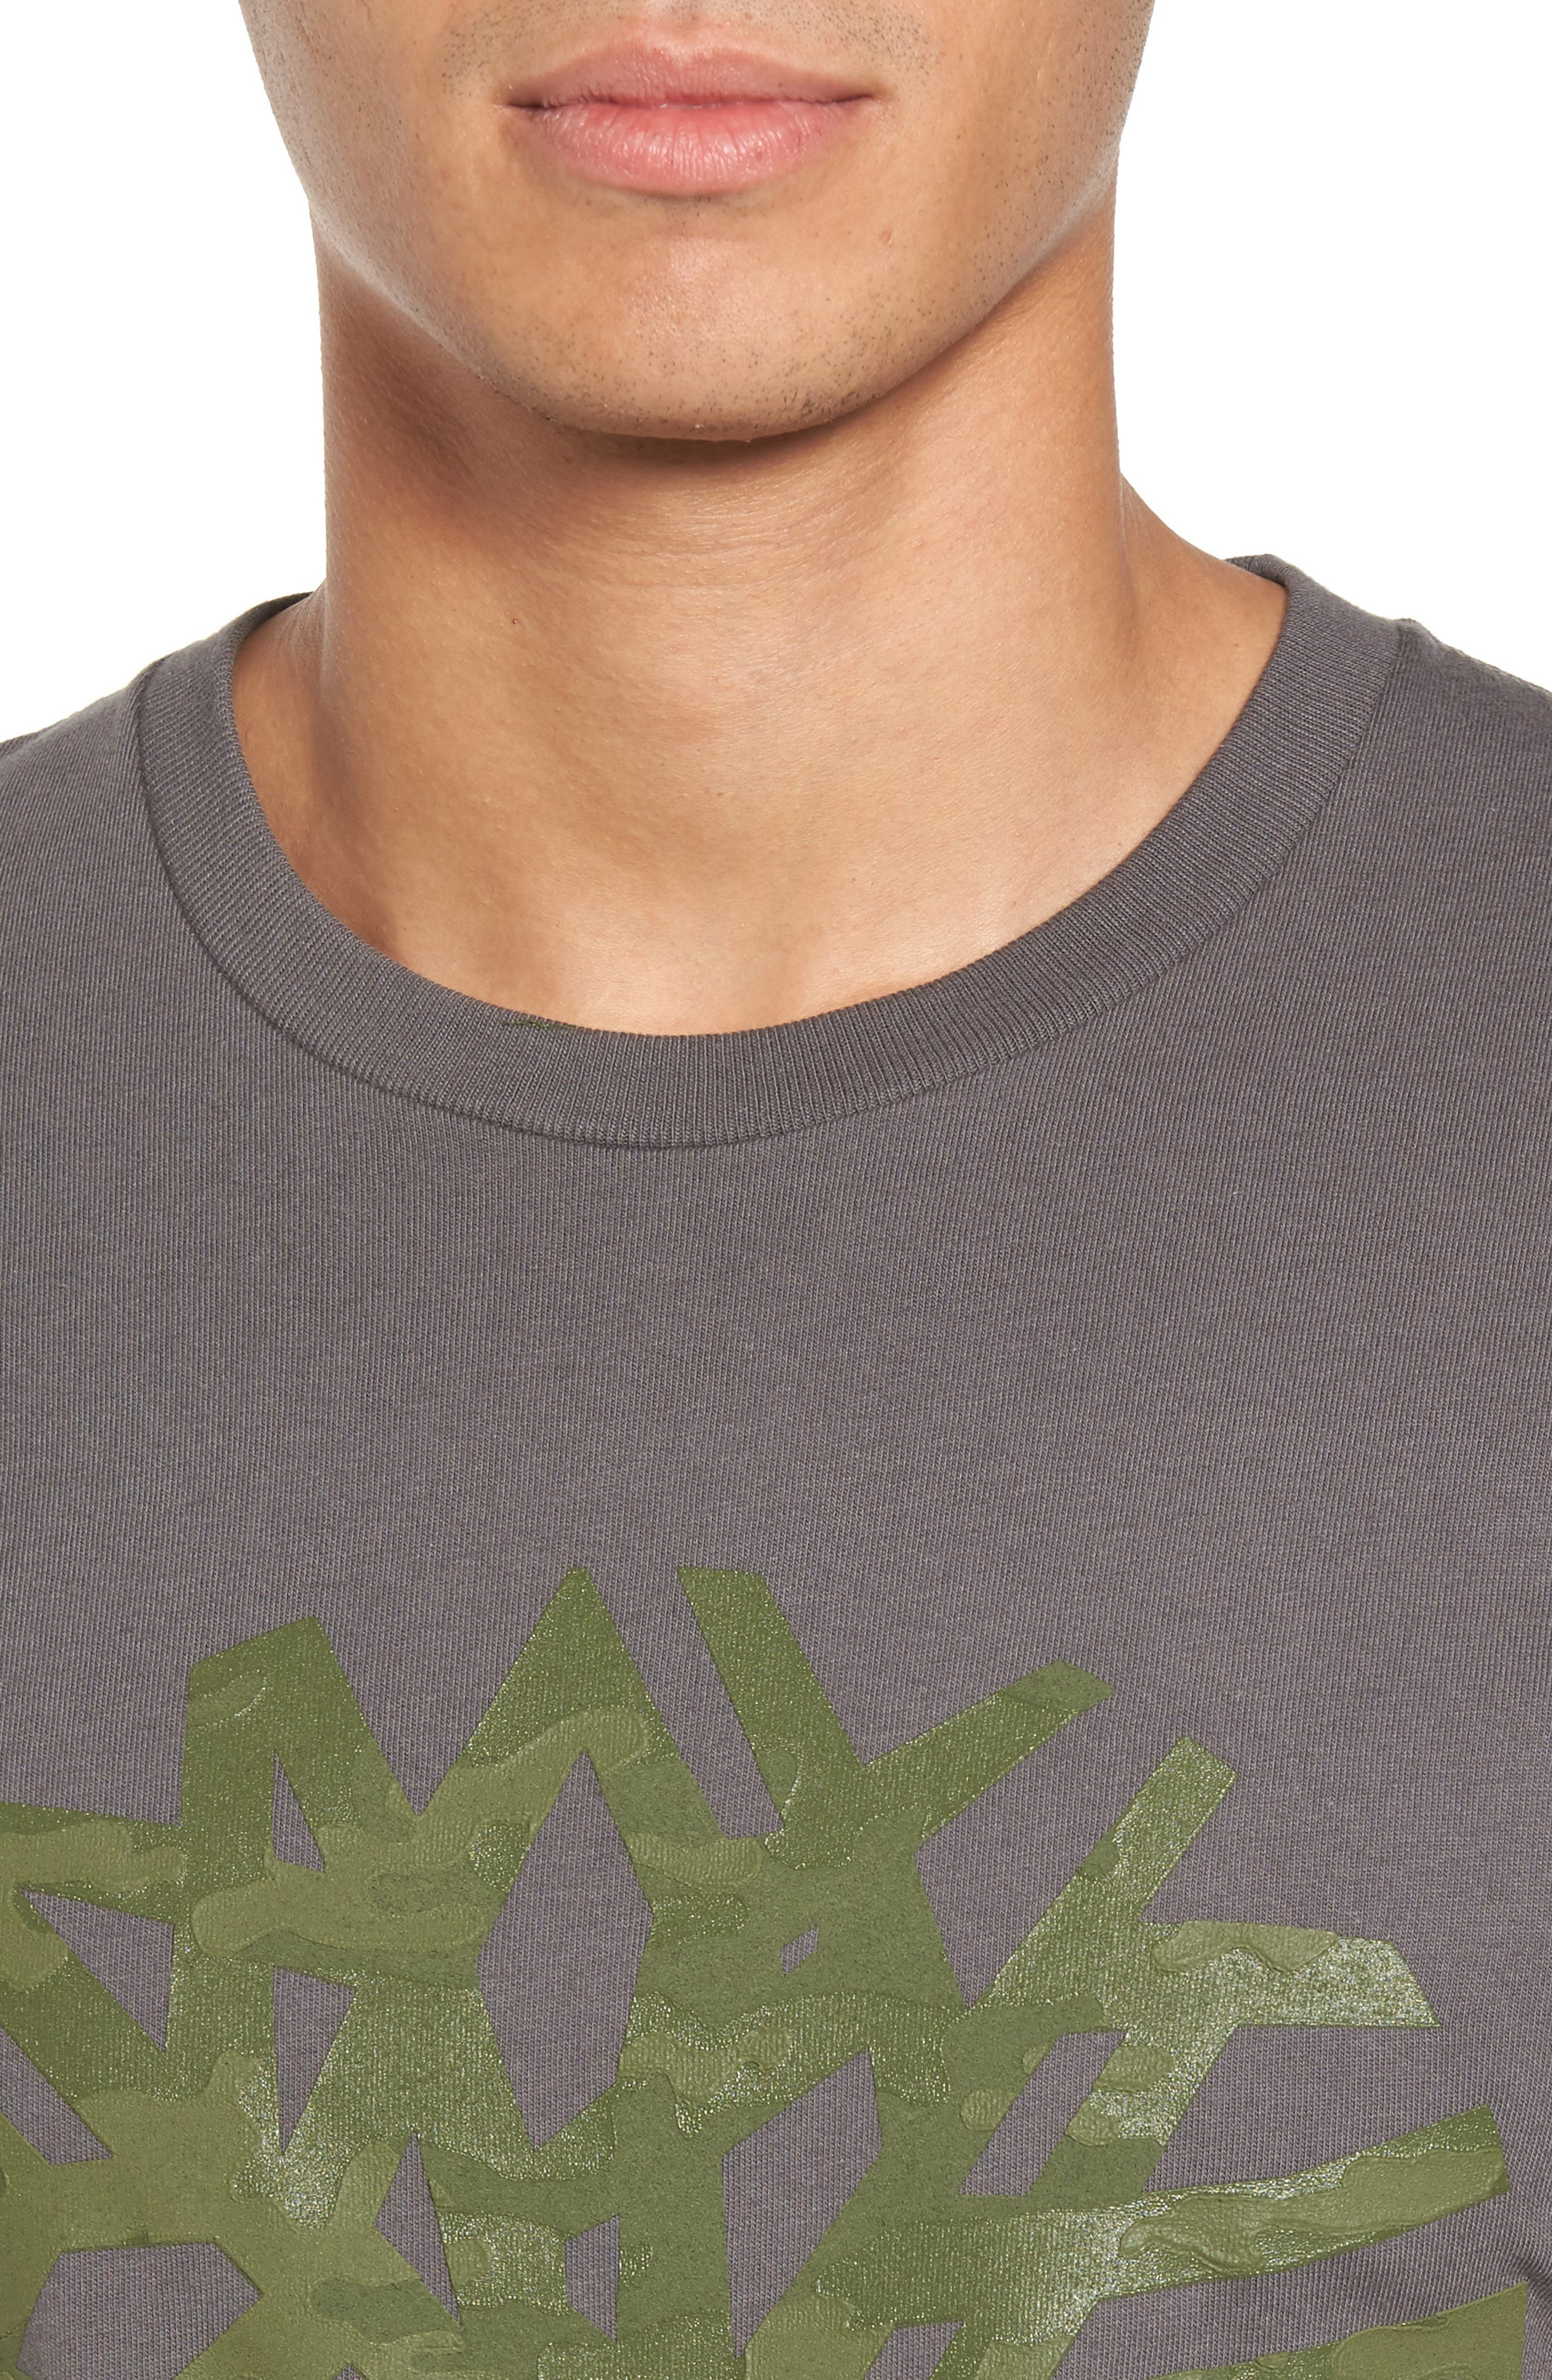 Textured Camo Graphic T-Shirt,                             Alternate thumbnail 4, color,                             Grey